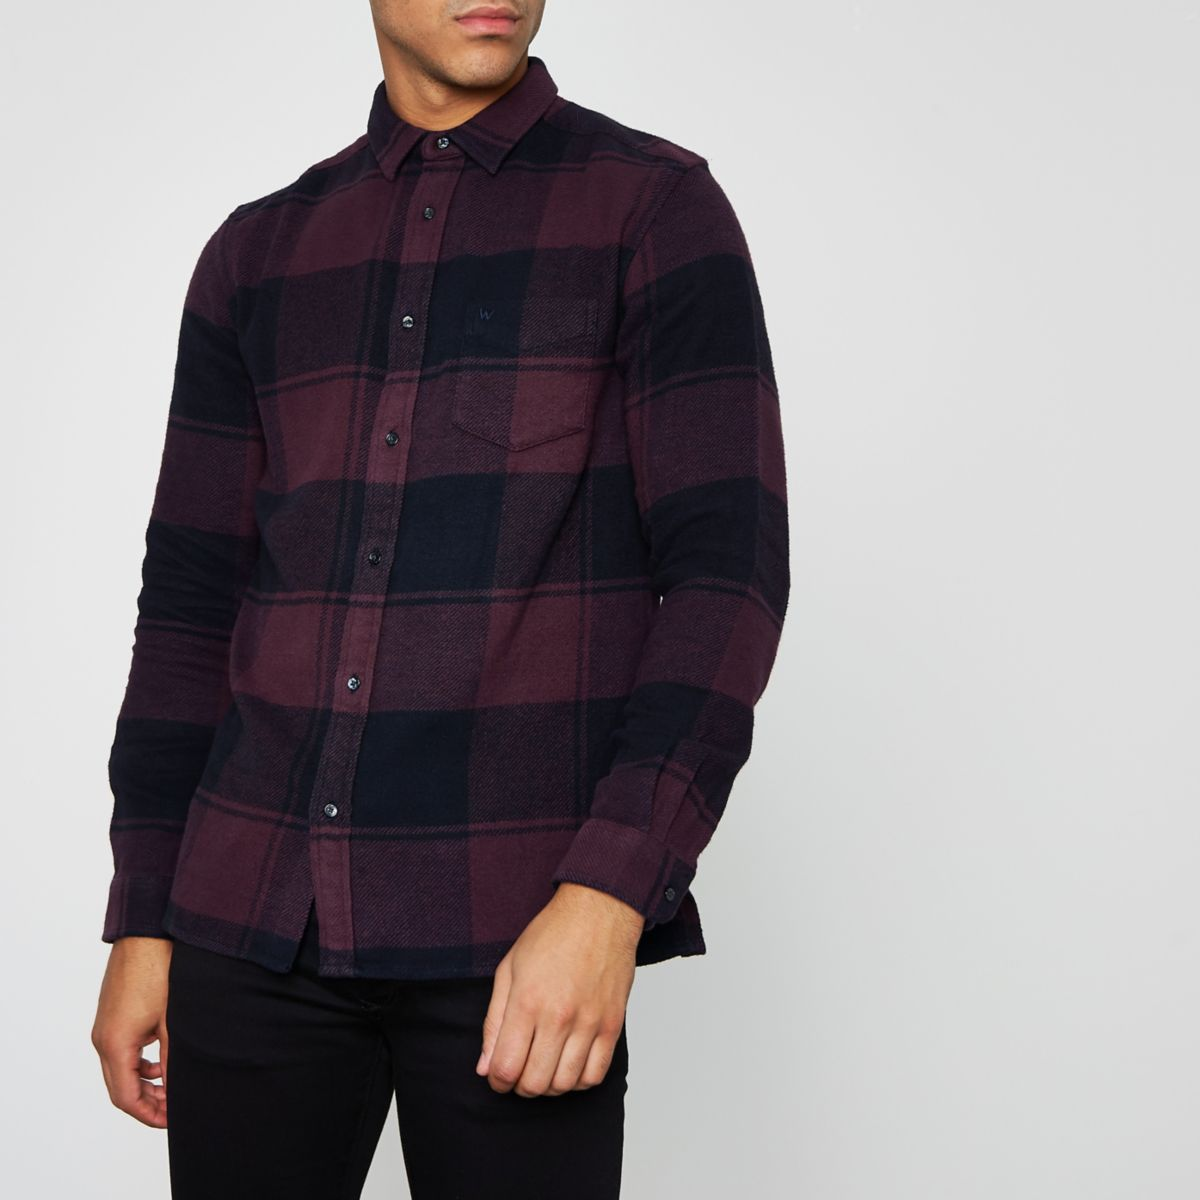 Burgundy Wrangler long sleeve check shirt